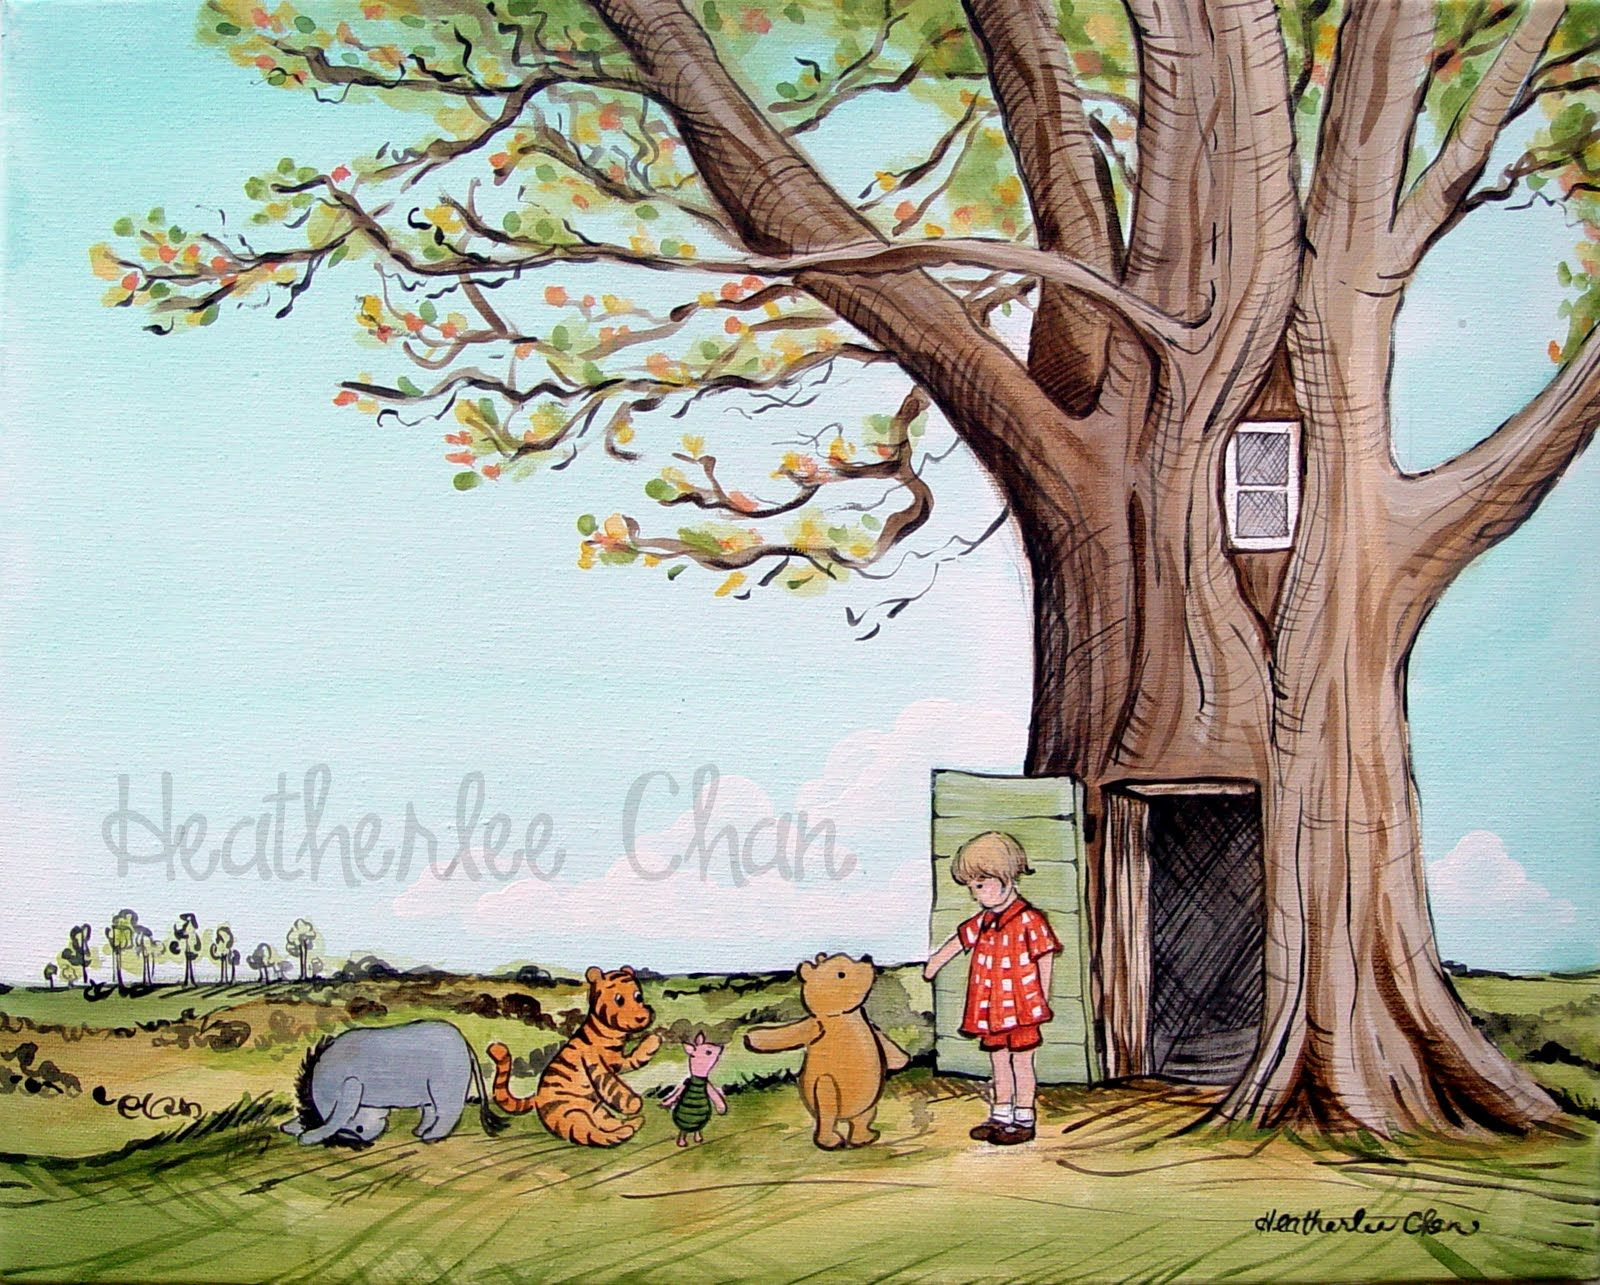 lady poppins classic winnie the pooh by the treehouse